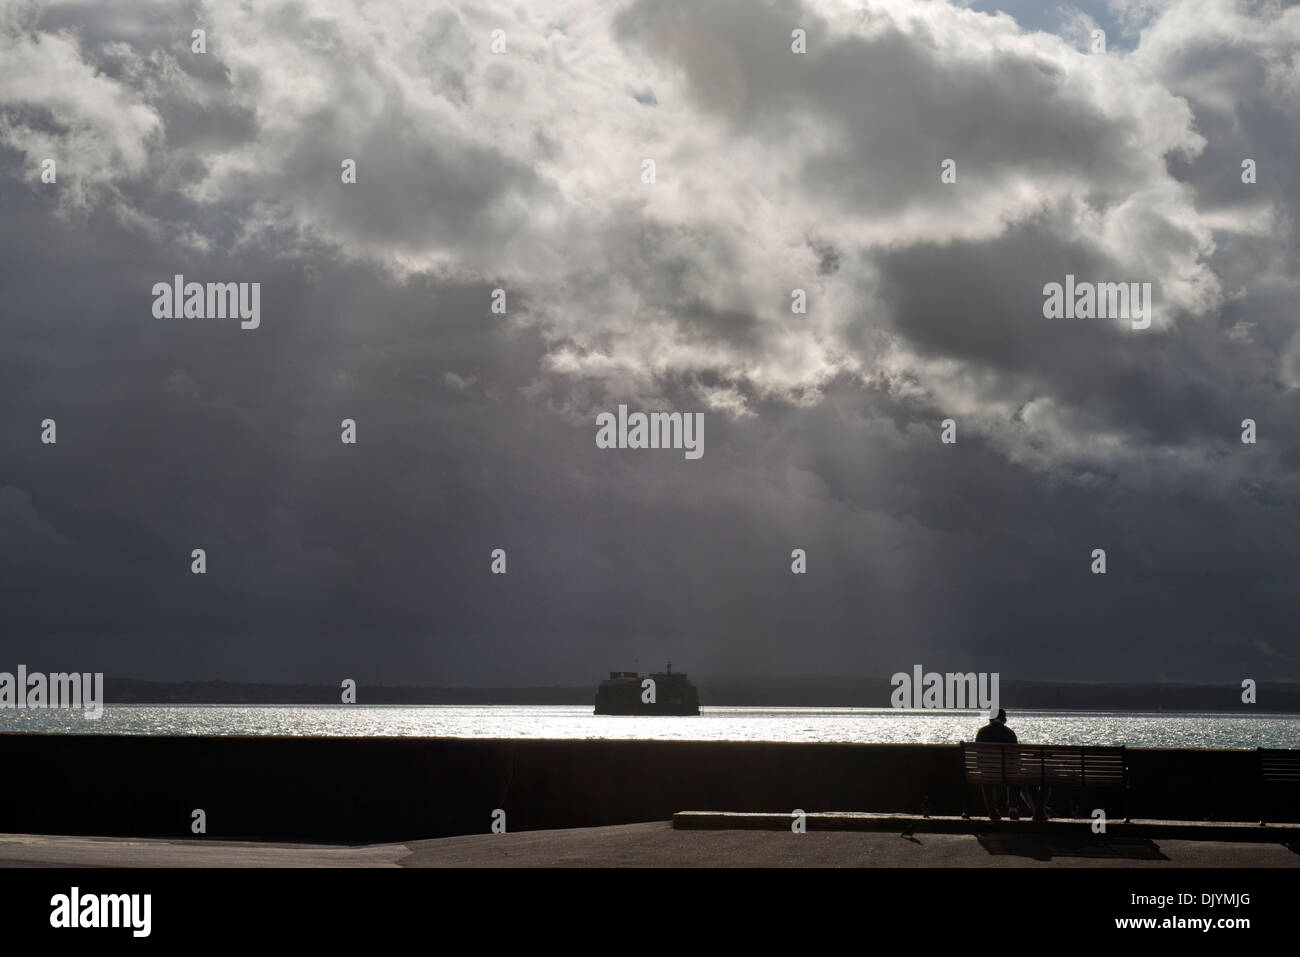 A solitary person watches the approaching storm at Southsea, Portsmouth. - Stock Image